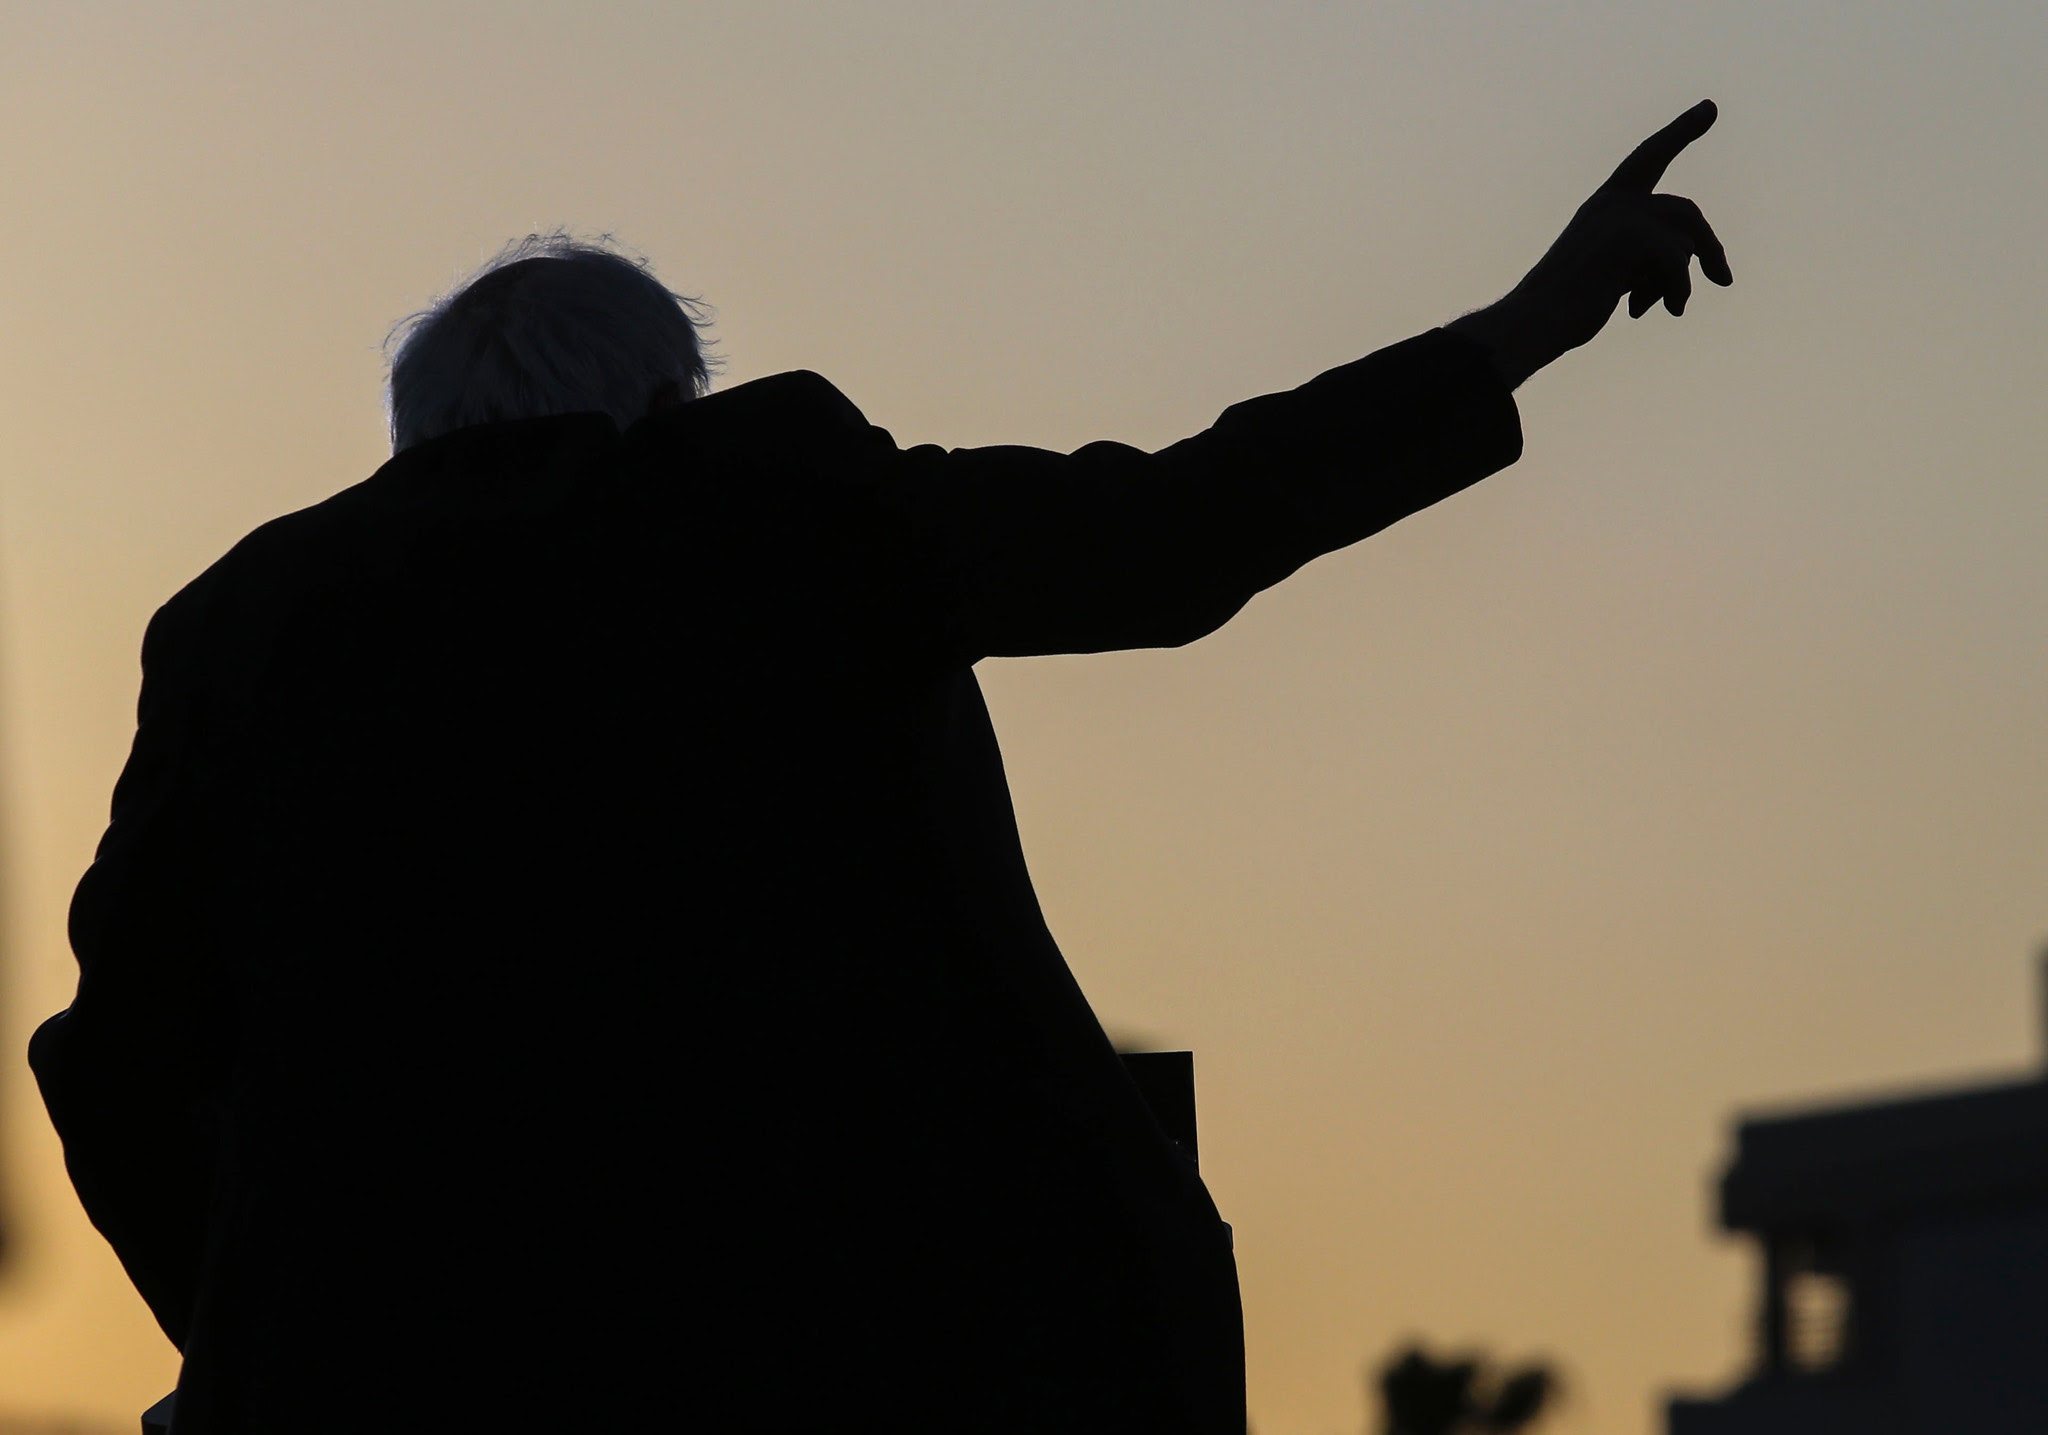 TOPSHOT - US Democratic presidential candidate Bernie Sanders speaks during a rally at Santa Monica High School Football Field in Santa Monica, California, on May 23, 2016. Democratic presidential frontrunner Hillary Clinton on May 23 rejected an invitation to take part in a final campaign debate against her rival Bernie Sanders, her campaign said. / AFP PHOTO / Ringo ChiuRINGO CHIU/AFP/Getty Images